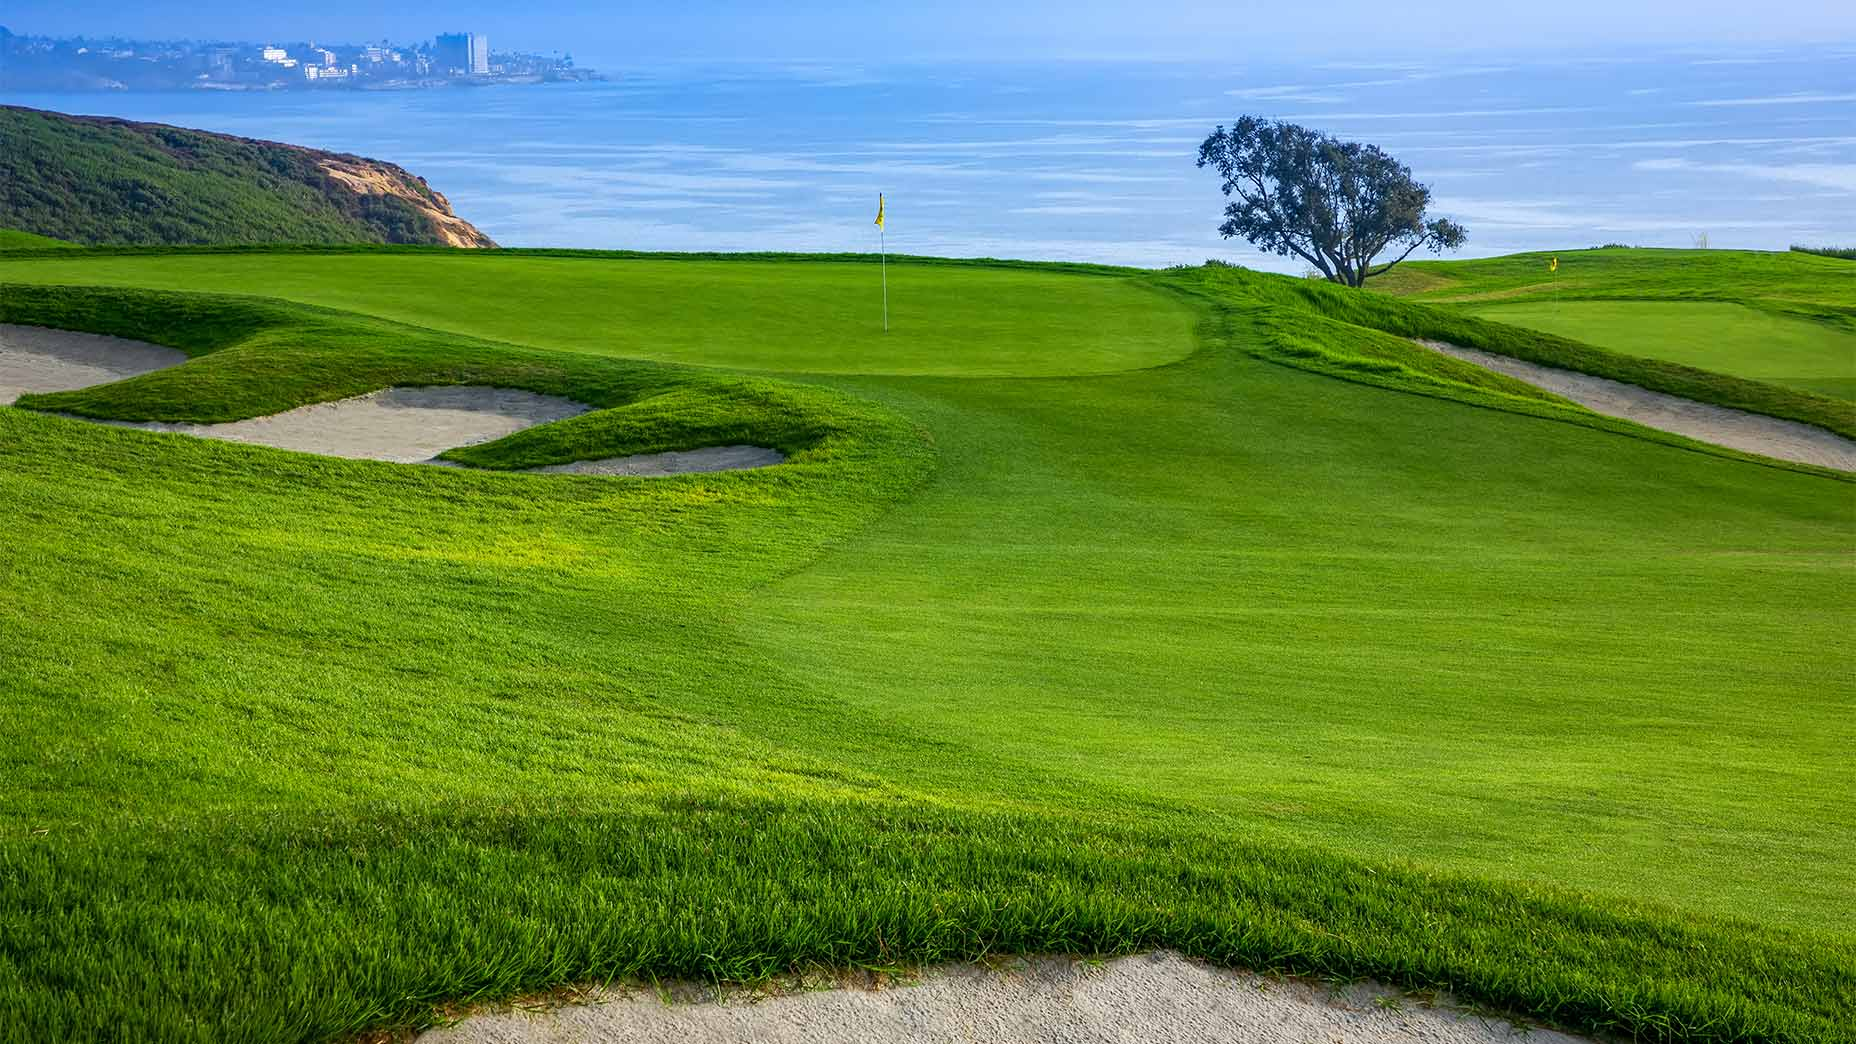 The 2nd hole at Torrey Pines south.